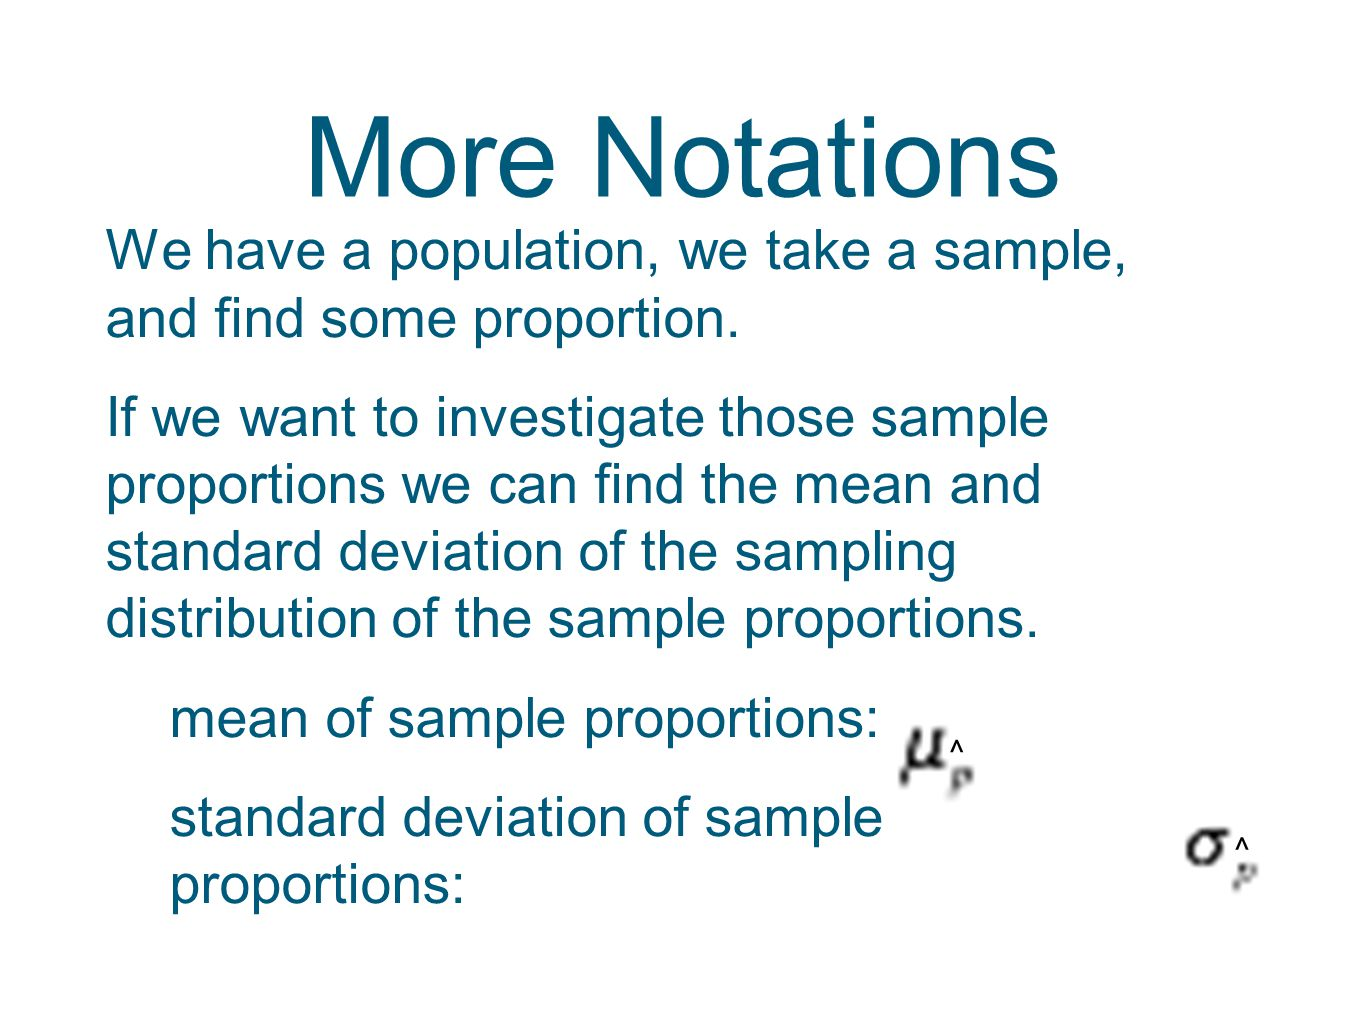 More Notations We Have A Population, We Take A Sample, And Find Some  Proportion